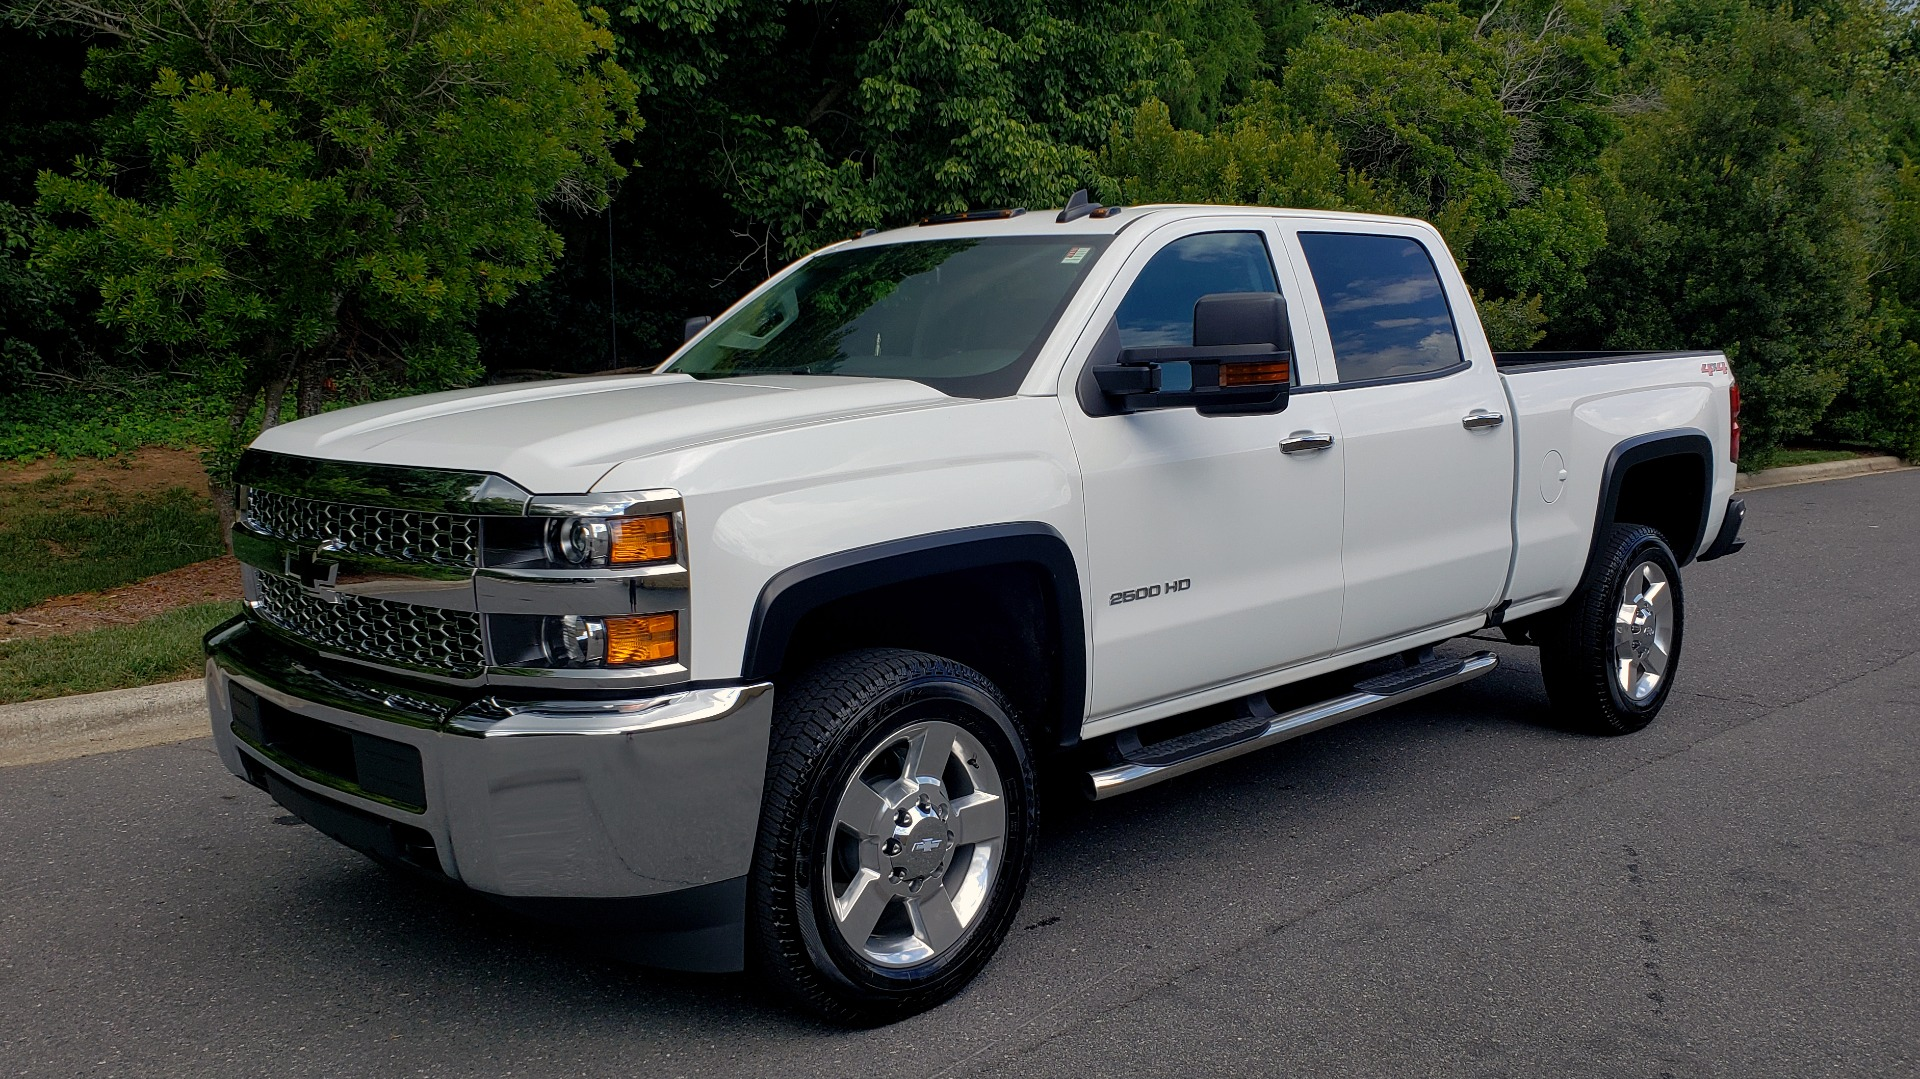 Used 2019 Chevrolet SILVERADO 2500HD WORK TRUCK / CREW CAB / 6.0L V8 / 4WD / BEDLINER for sale Sold at Formula Imports in Charlotte NC 28227 1